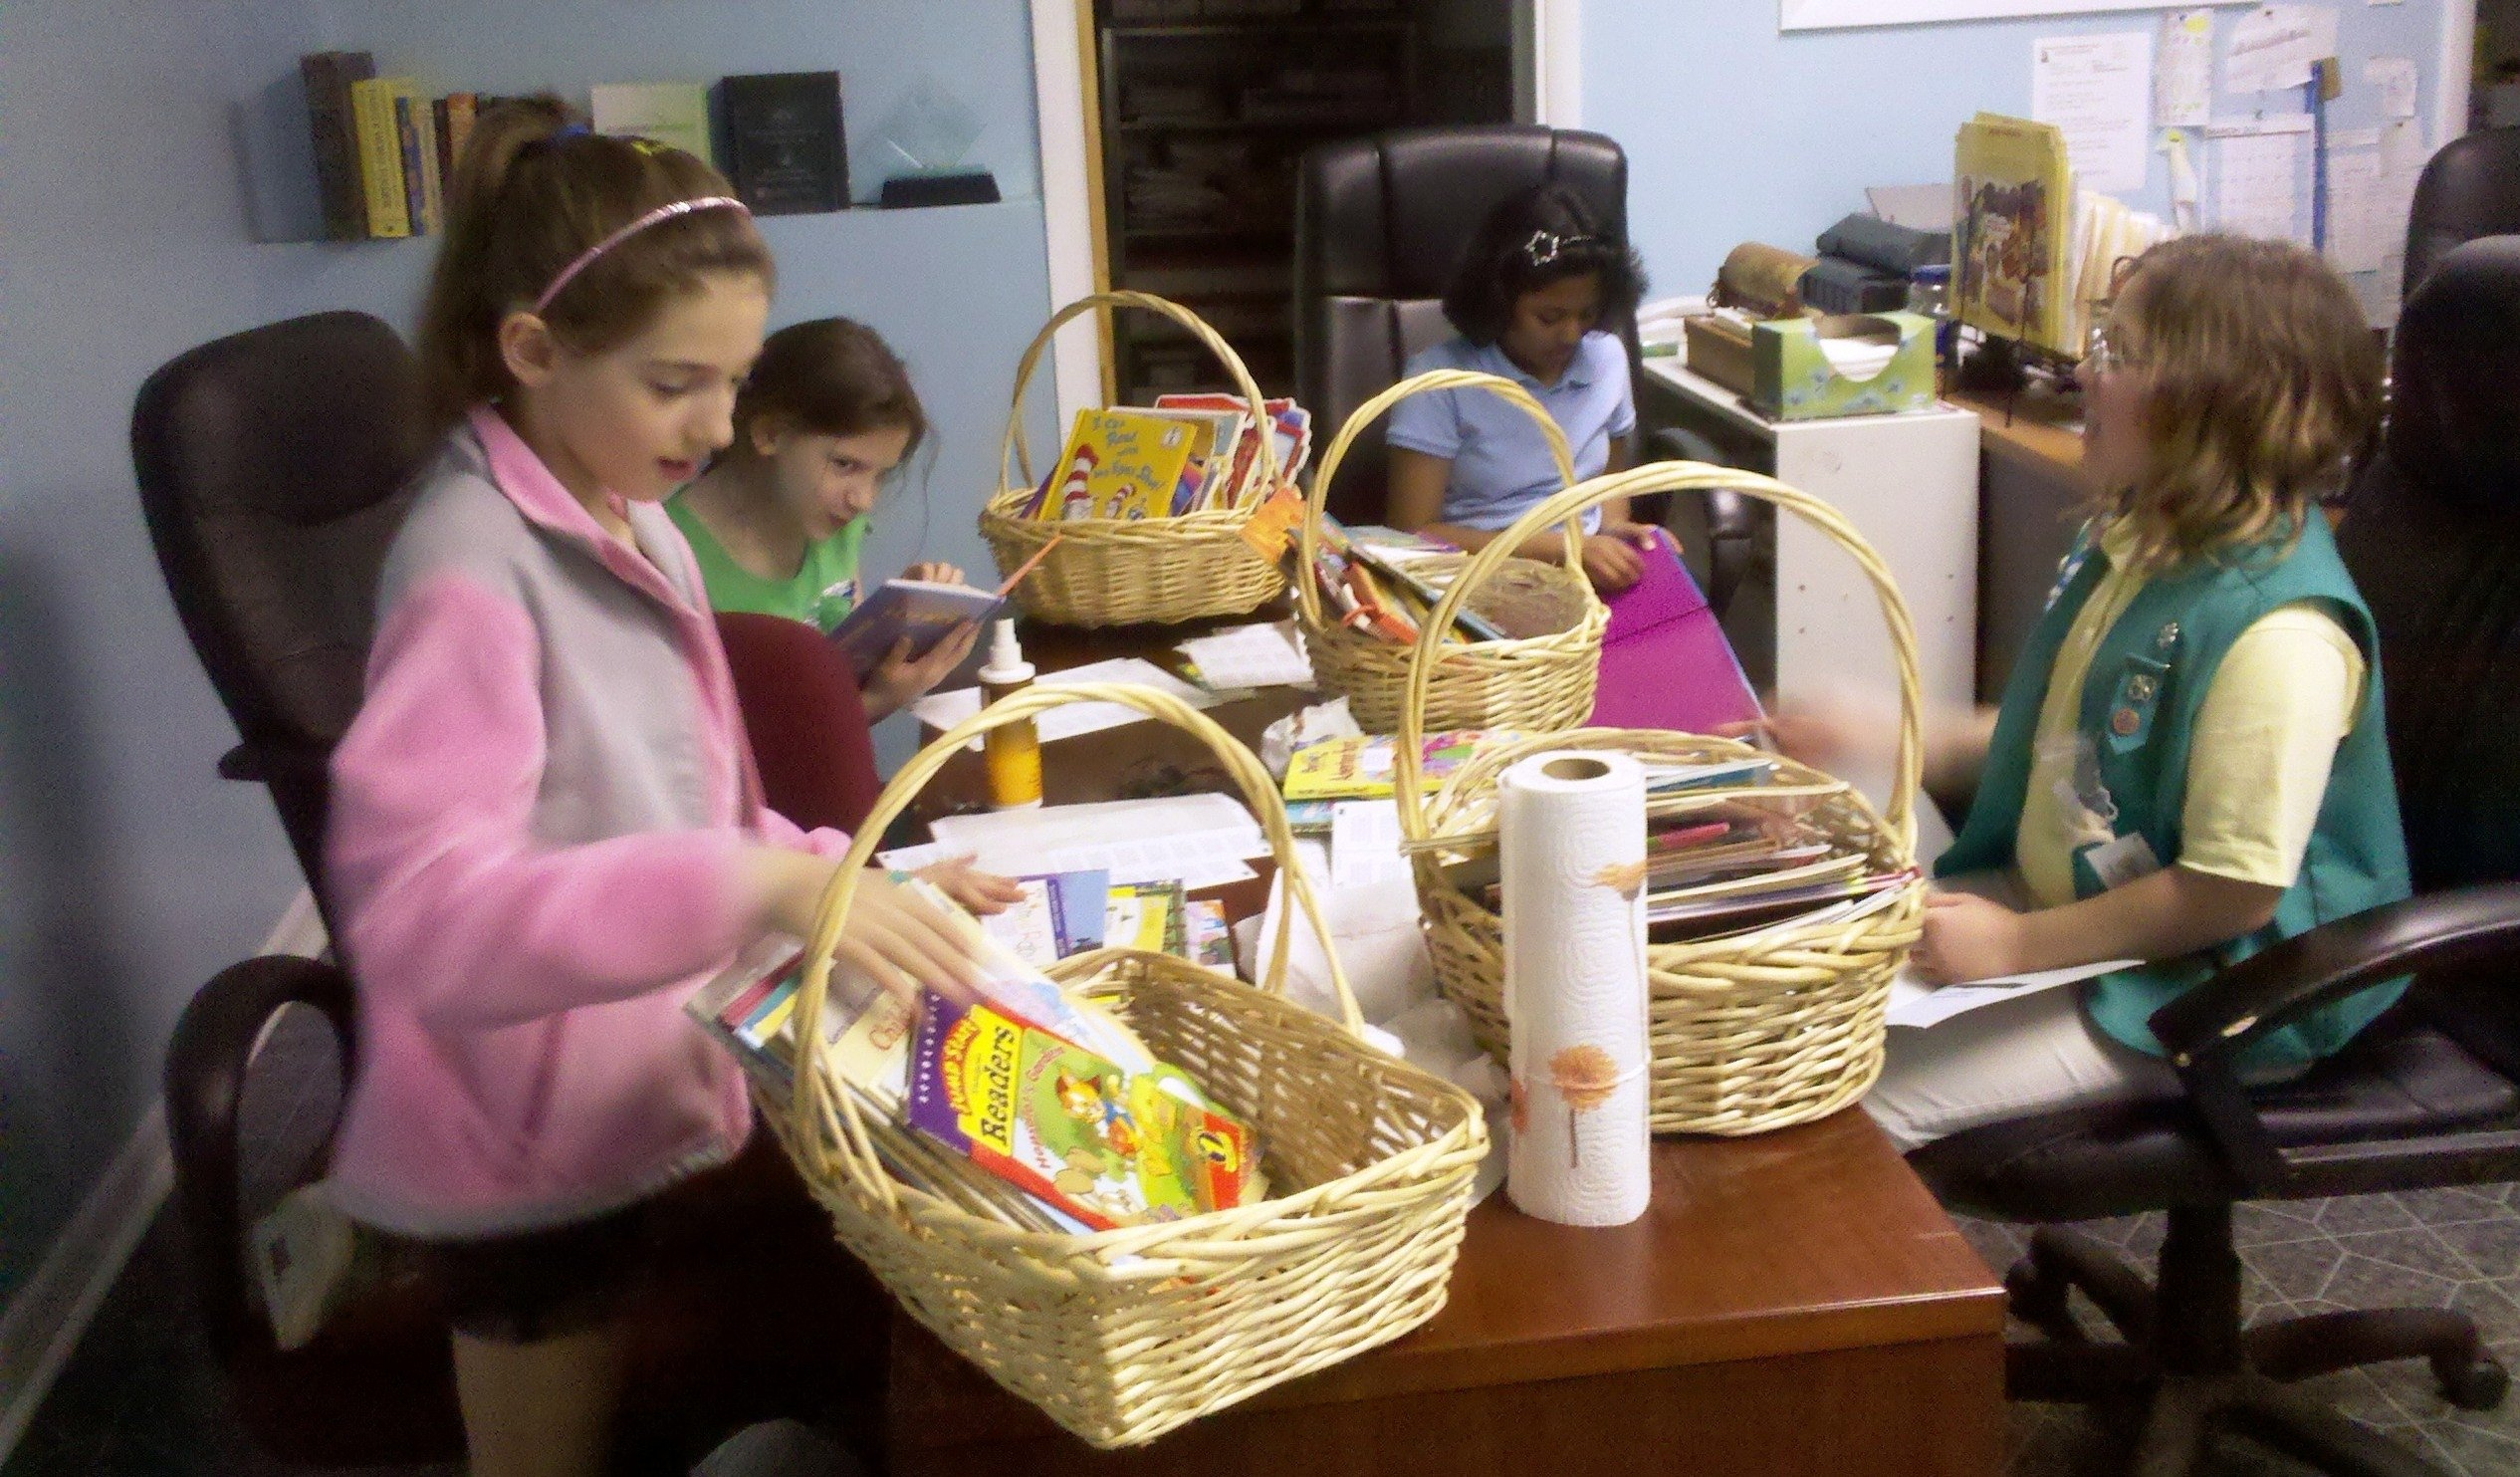 girl scout troop #969 works to earn the prestigious girl scout